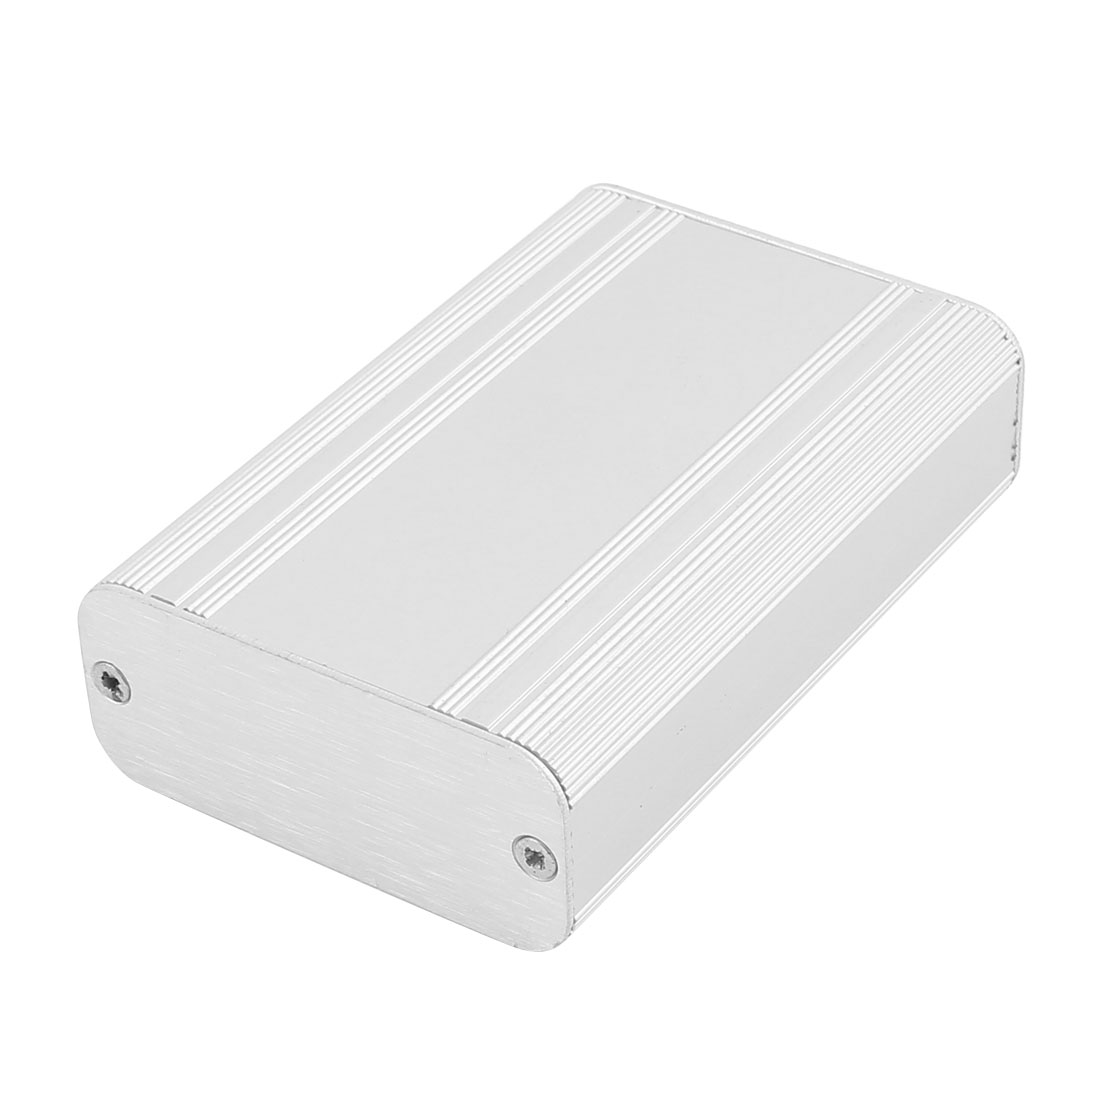 87x58x25mm Multi-purpose Extruded Aluminum Enclosure Electronic Box Silver Tone